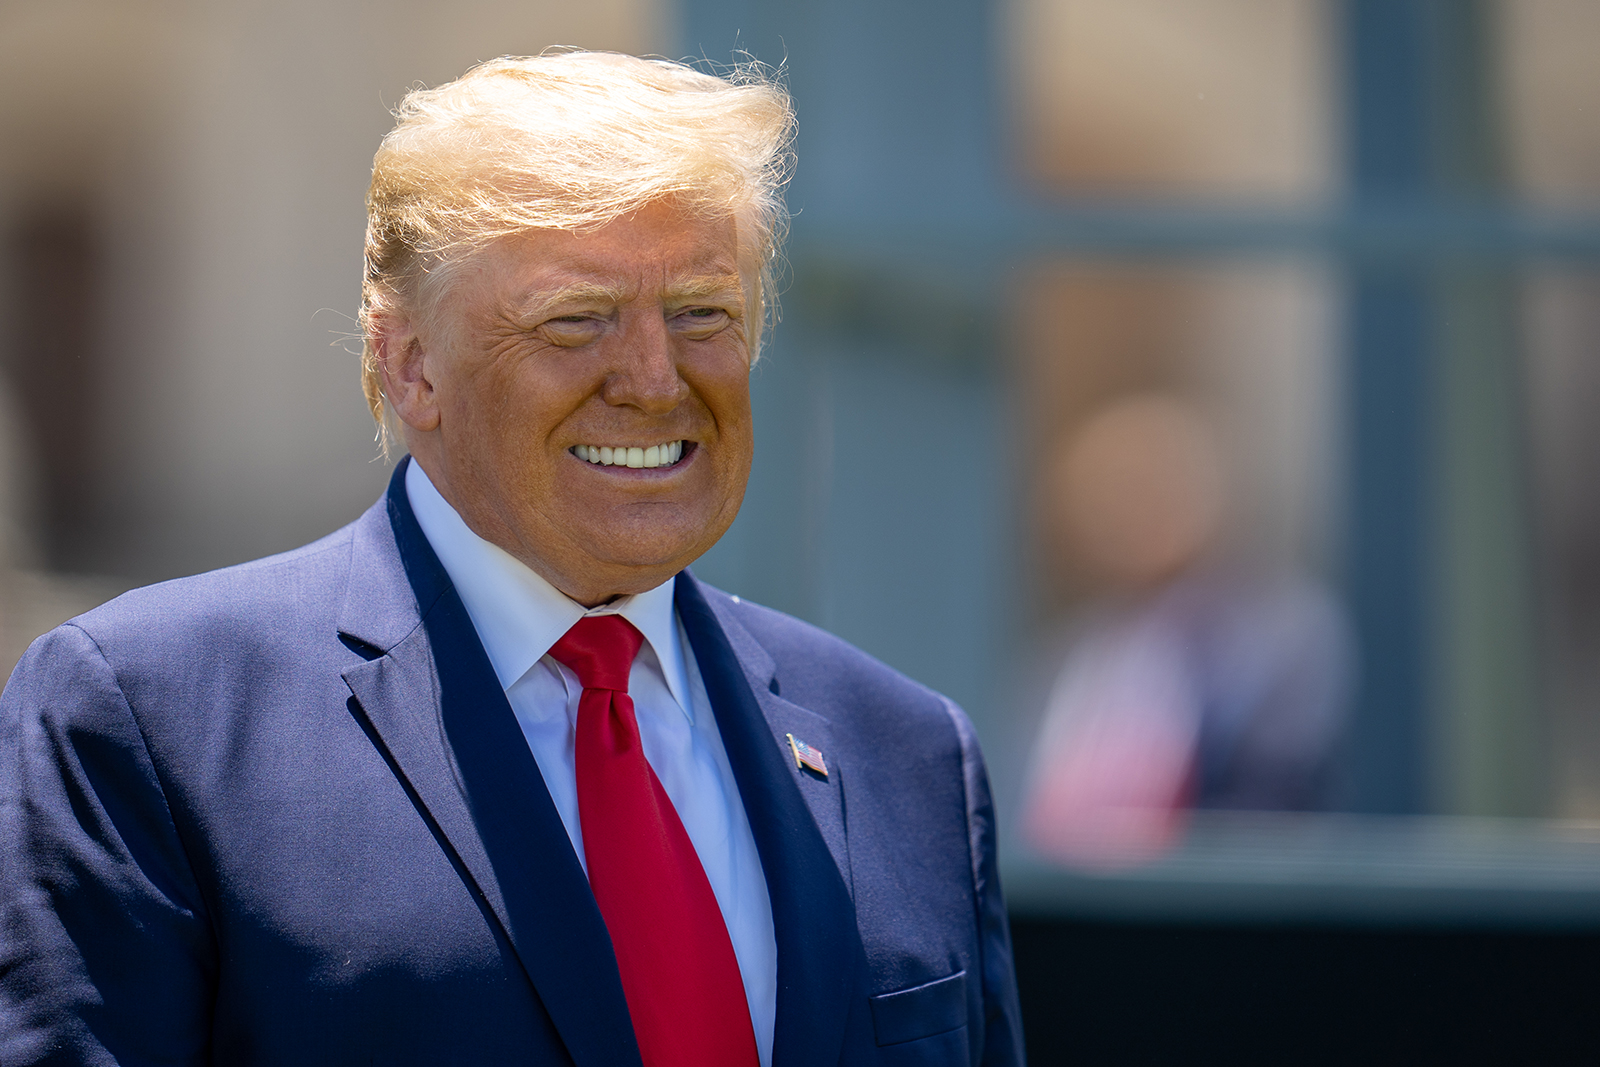 US President Donald Trump smiles at the end of the commencement ceremony on June 13, in West Point, New York.